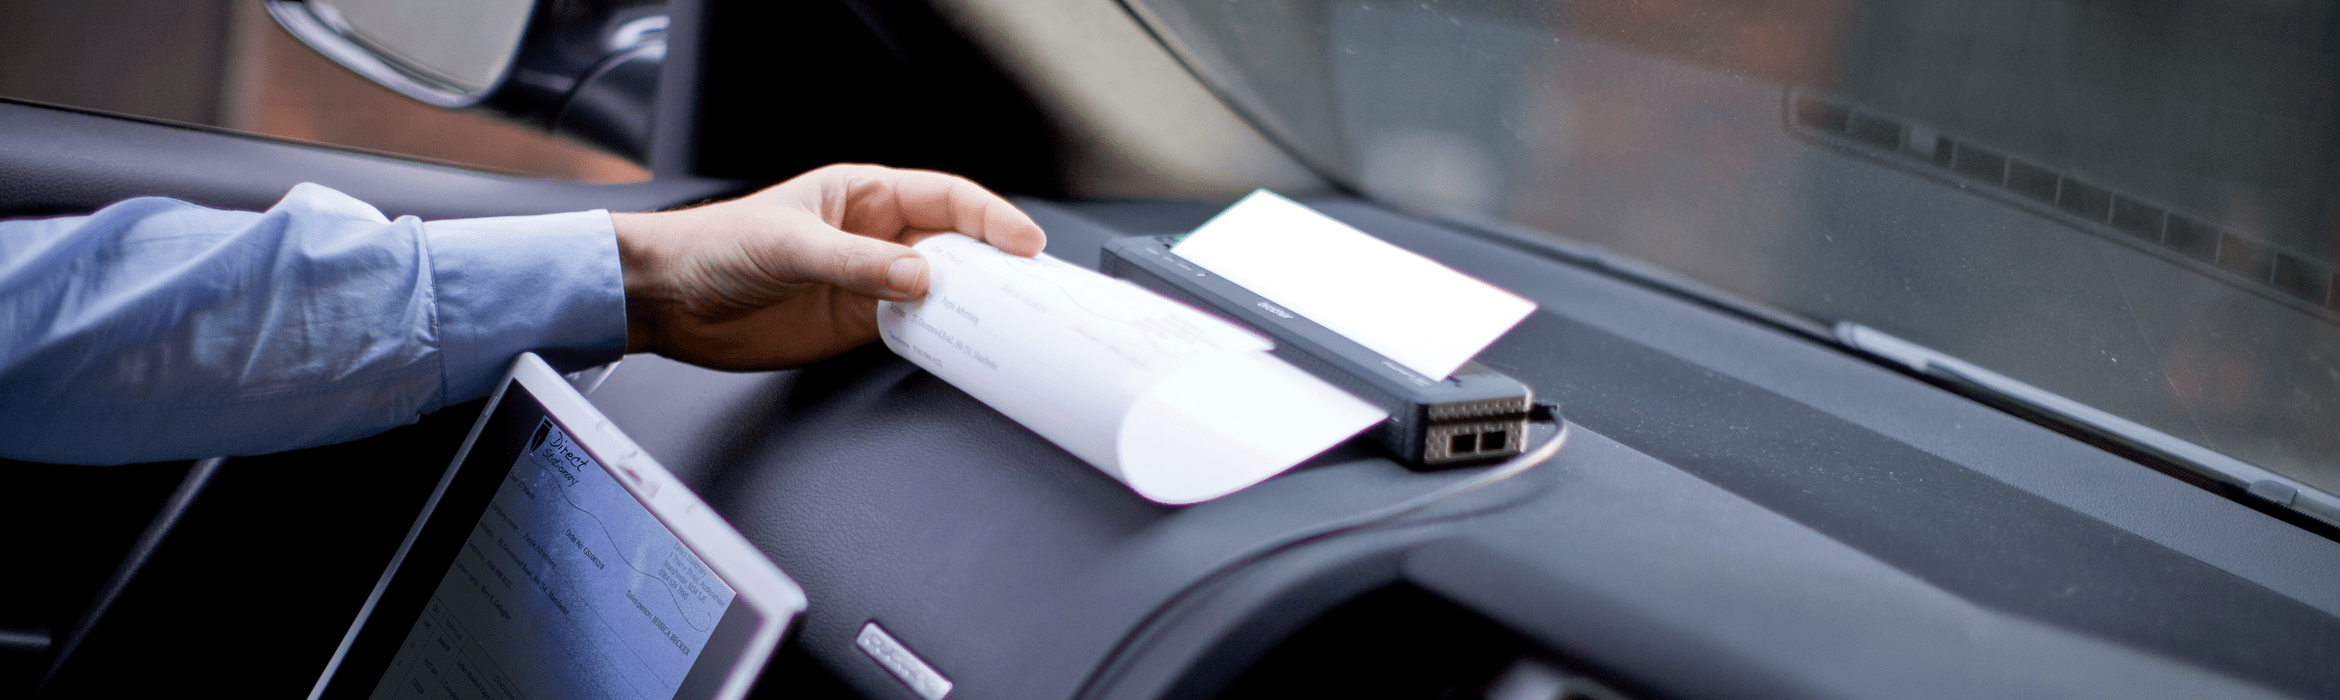 Man using a Brother PocketJet mobile printer on a car dashboard